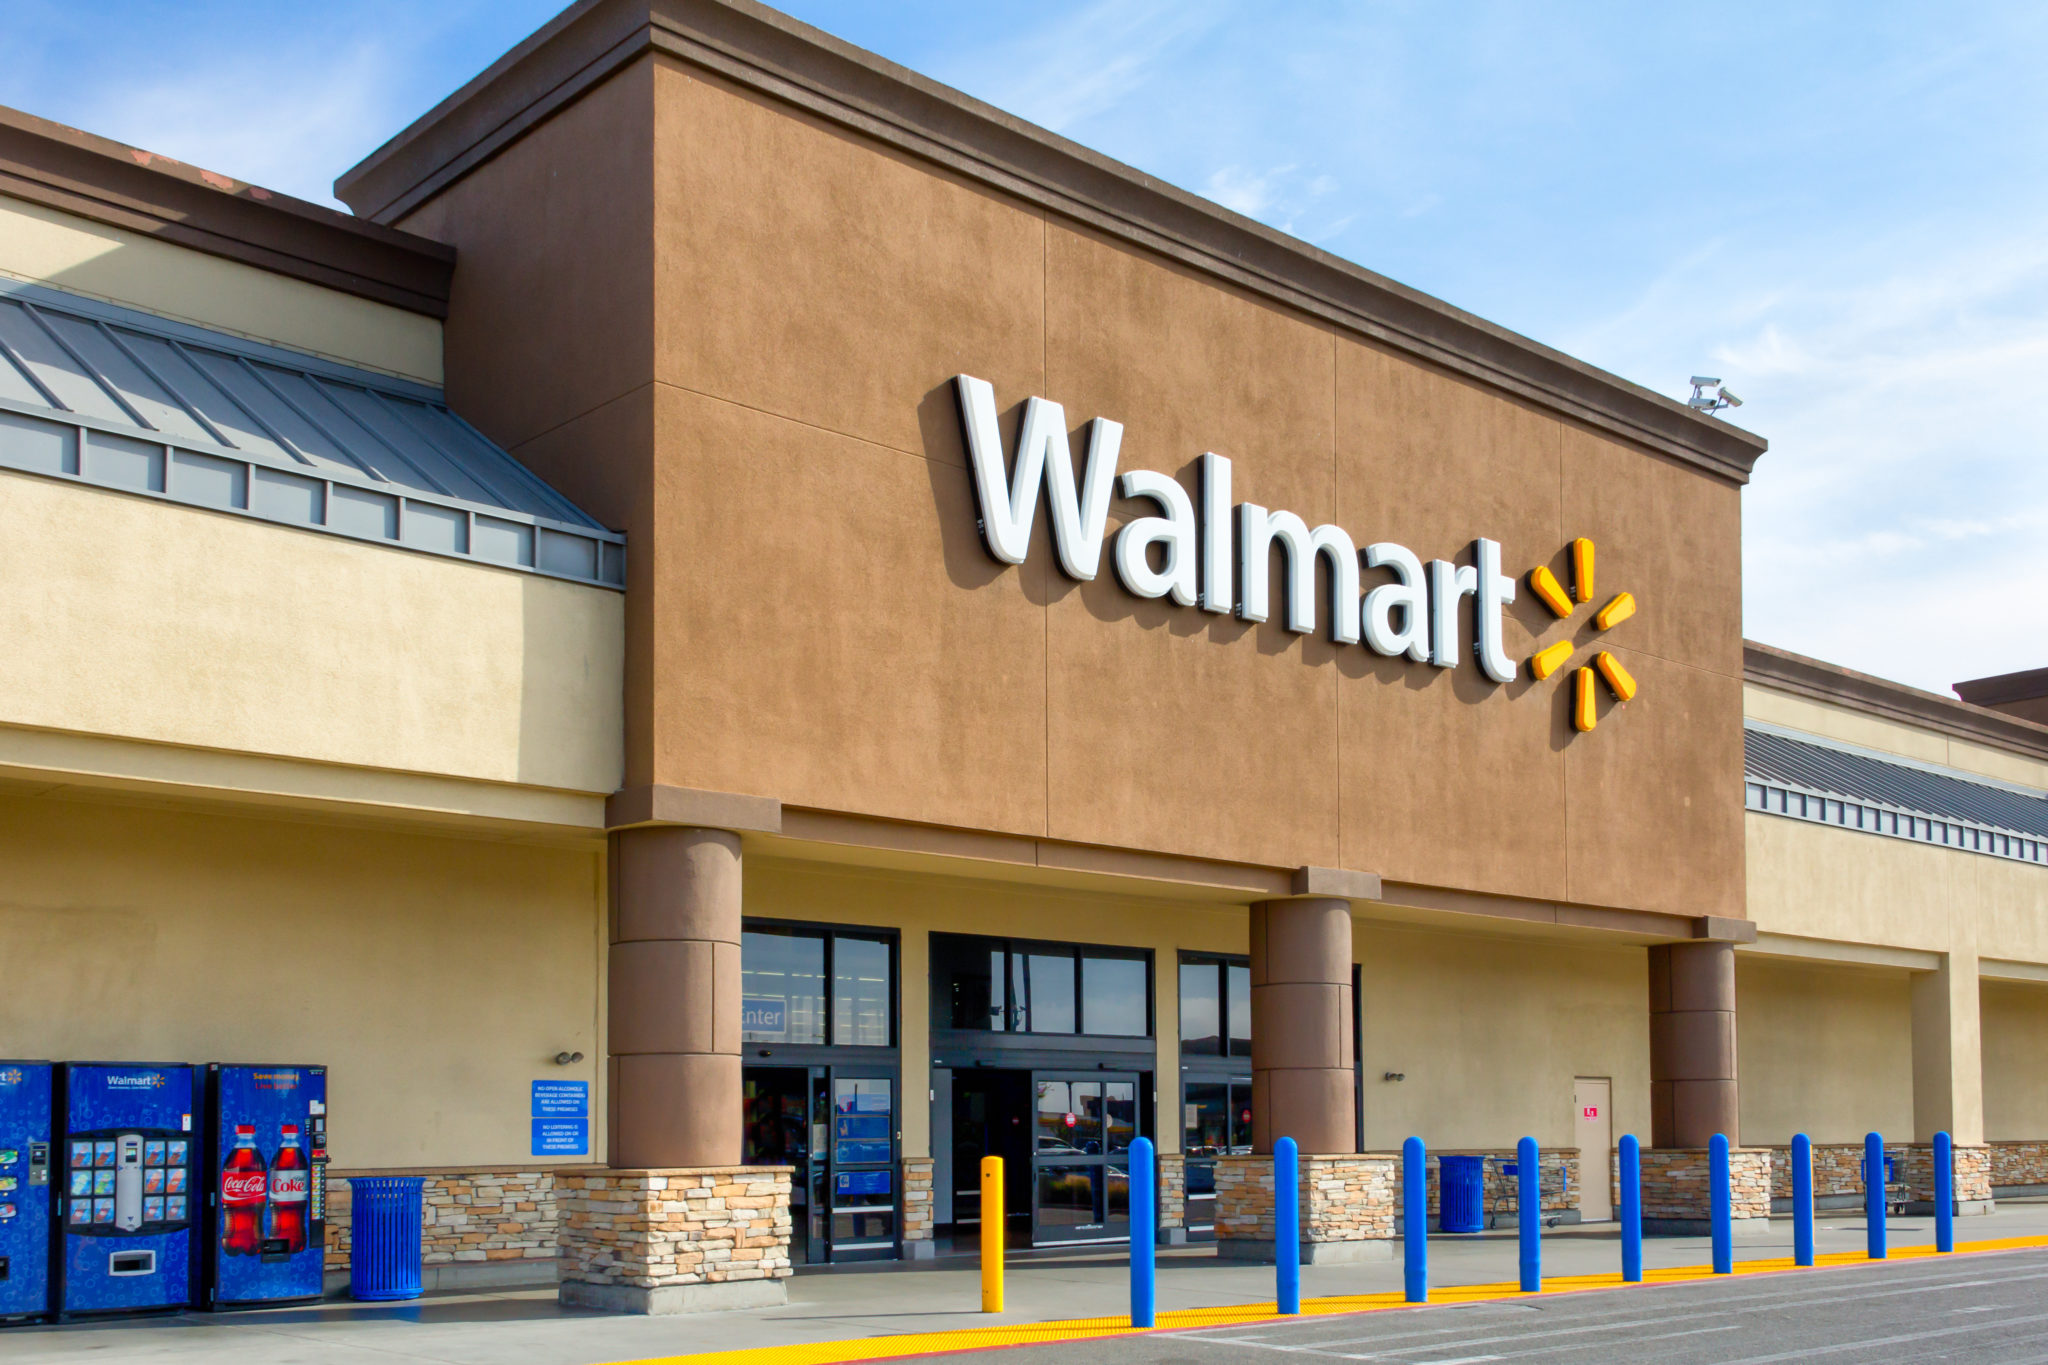 Apply Walmart Credit Card Instant Approval >> Walmart Credit Card Review Is This Card Worth Getting 2019